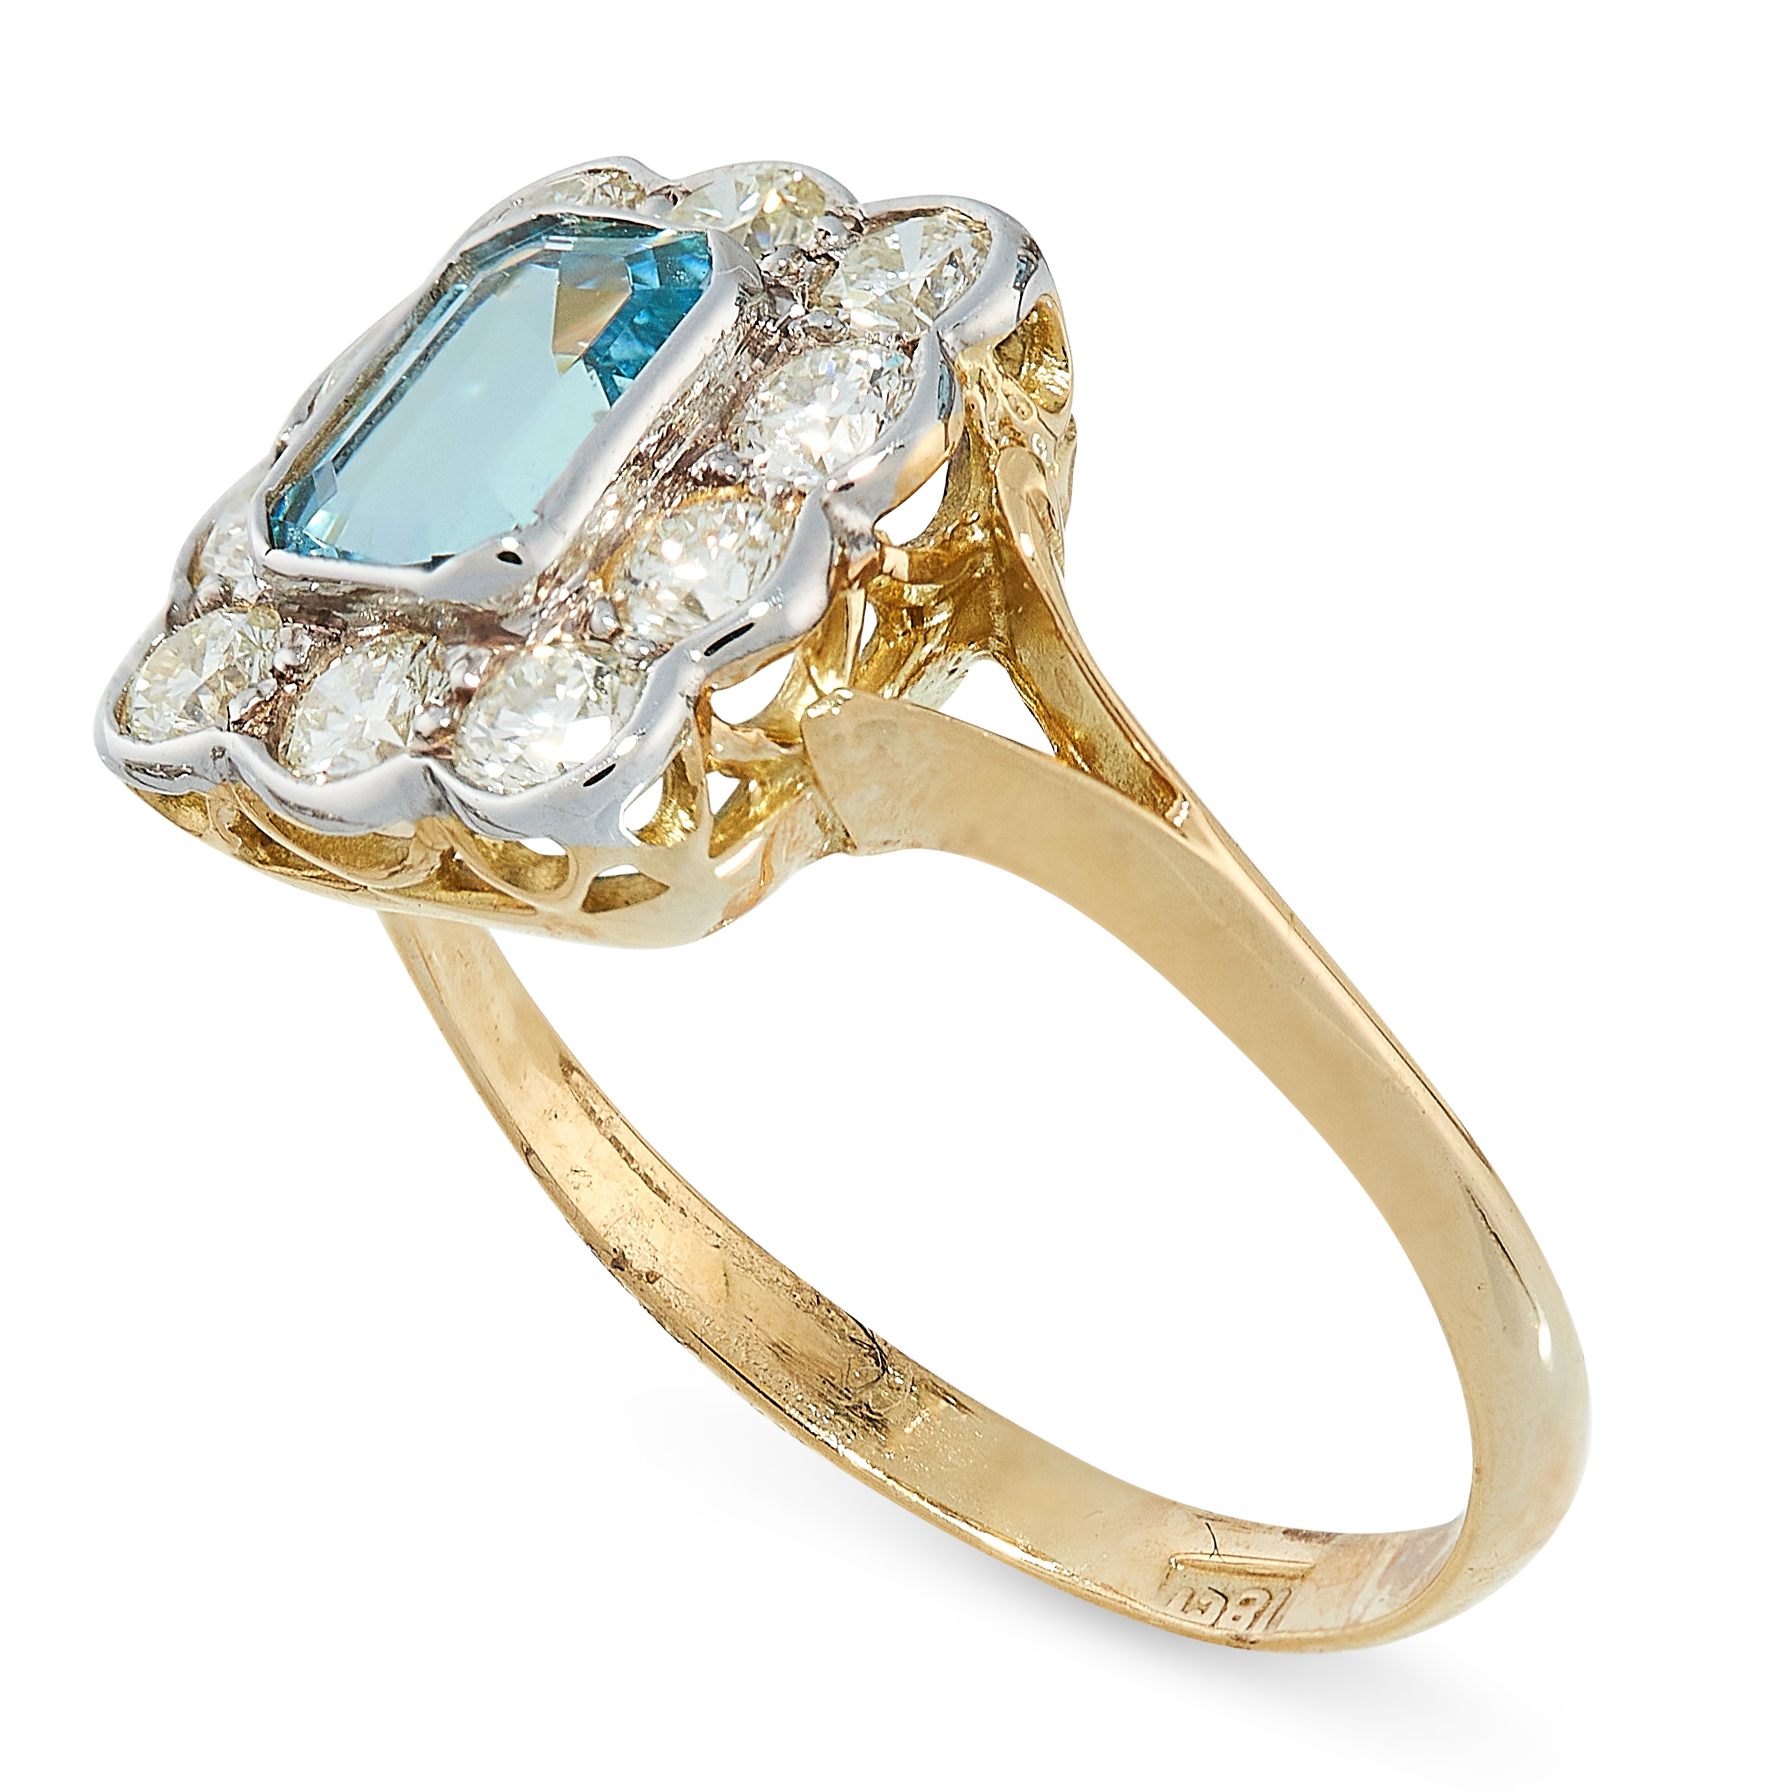 AQUAMARINE AND DIAMOND RING in cluster design, set with an emerald cut aquamarine in a border of - Image 2 of 2